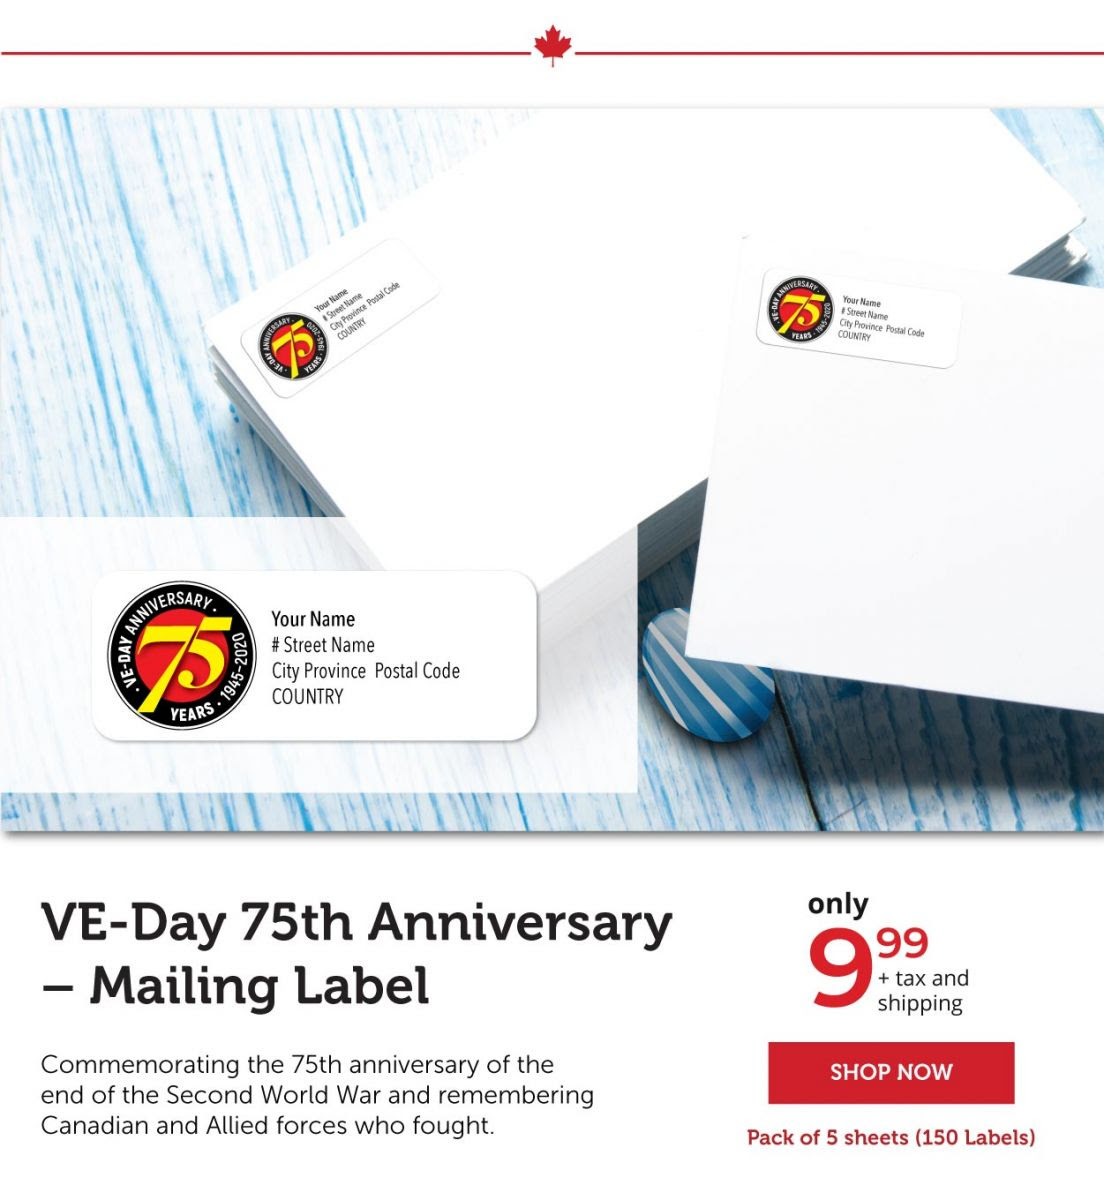 VE-Day Mailing Labels